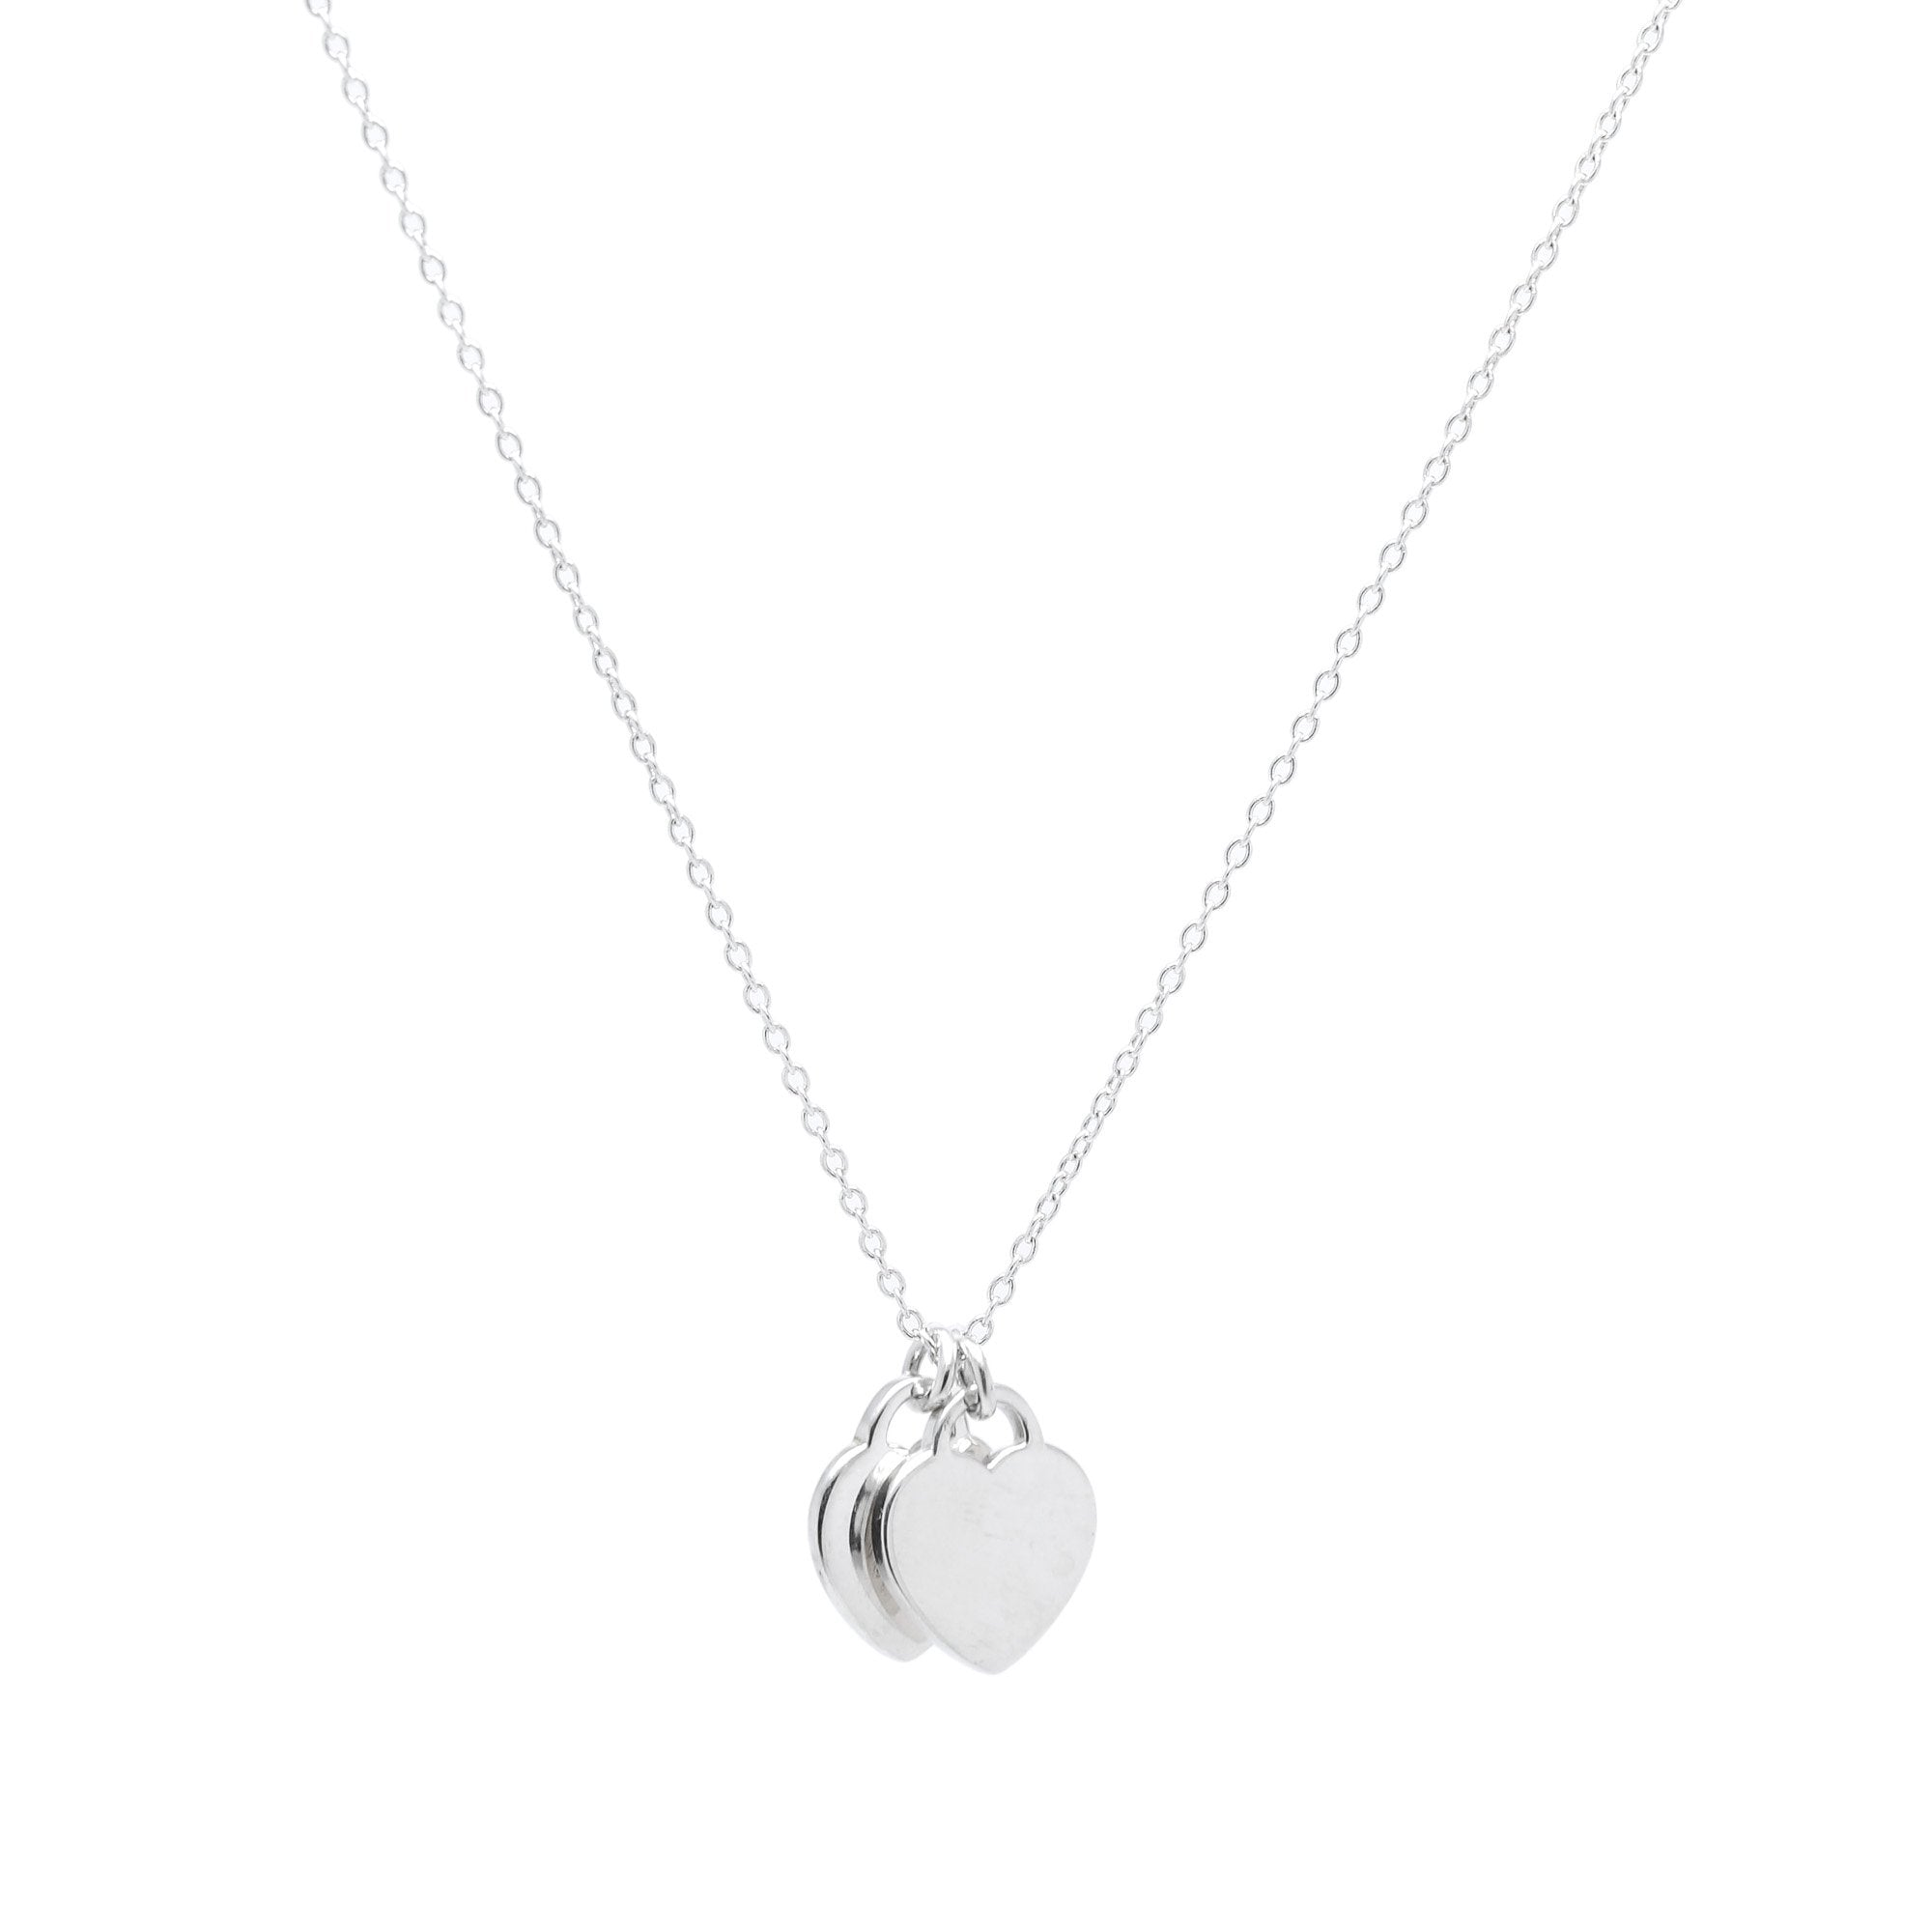 06bc0860a Return to Tiffany Mini Double Heart Tag Pendant Necklace with Blue Enamel;  Tiffany & Co.